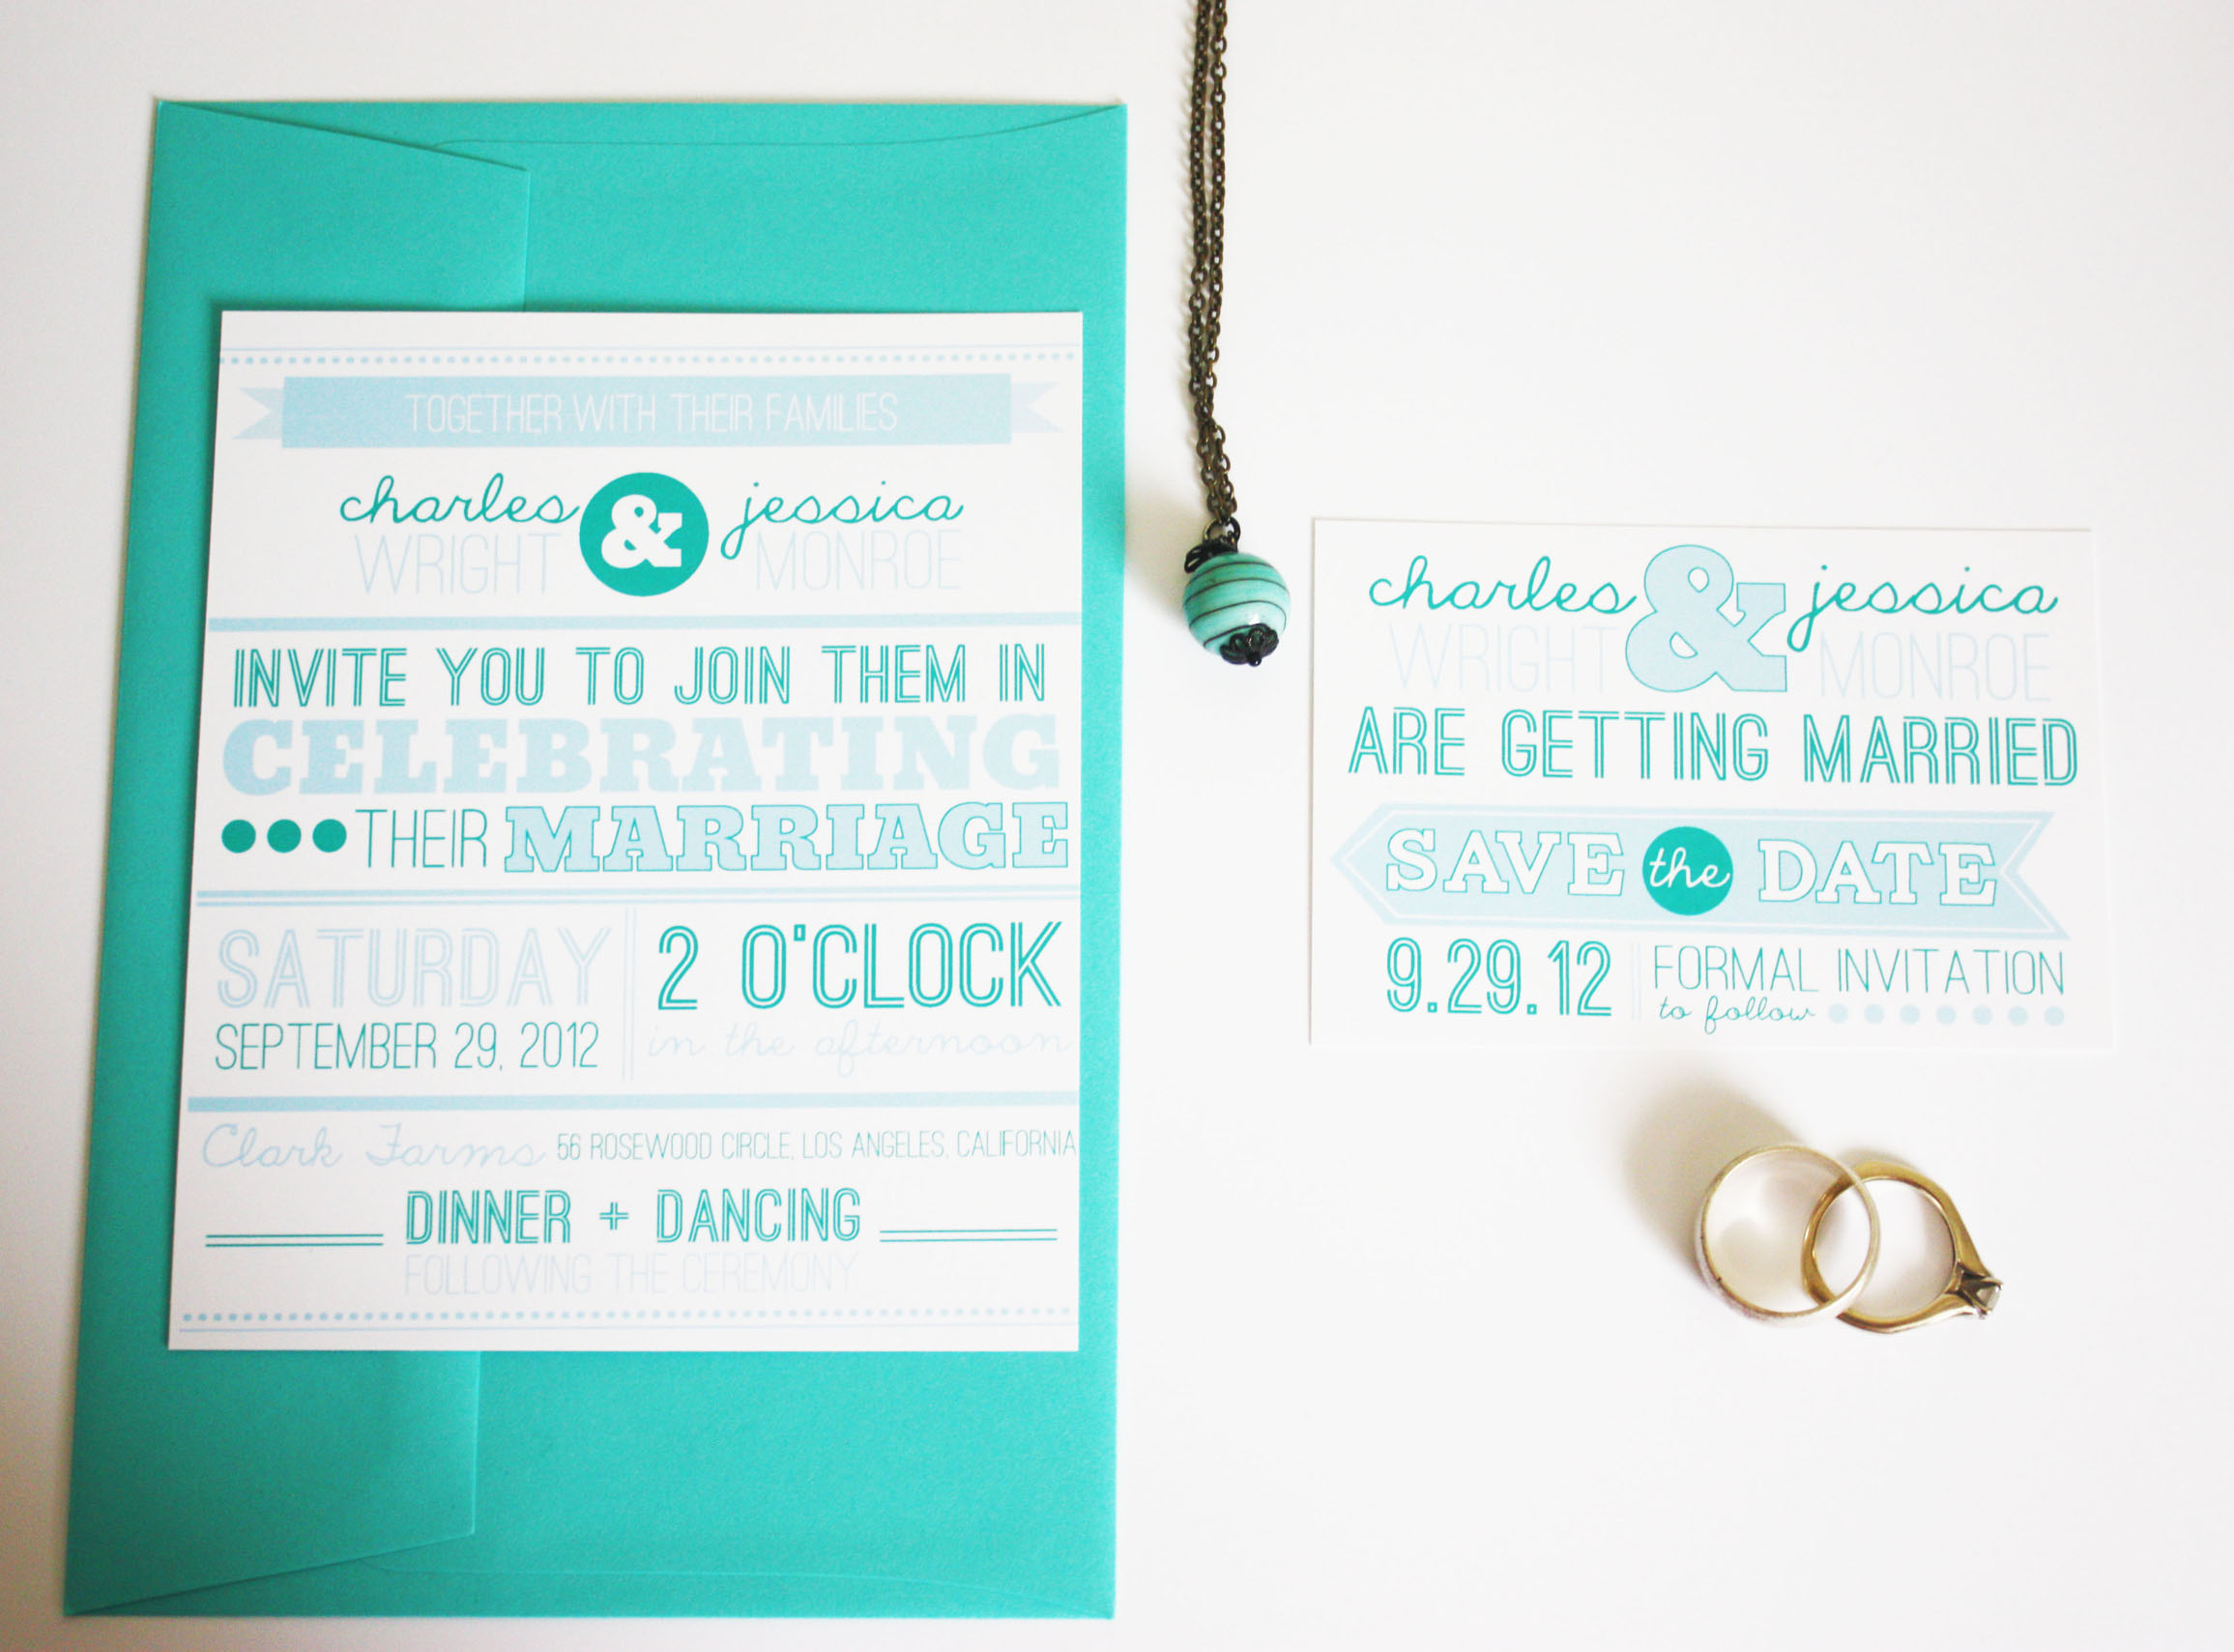 Wedding Announcement And Save The Date Invitations Customizable ...